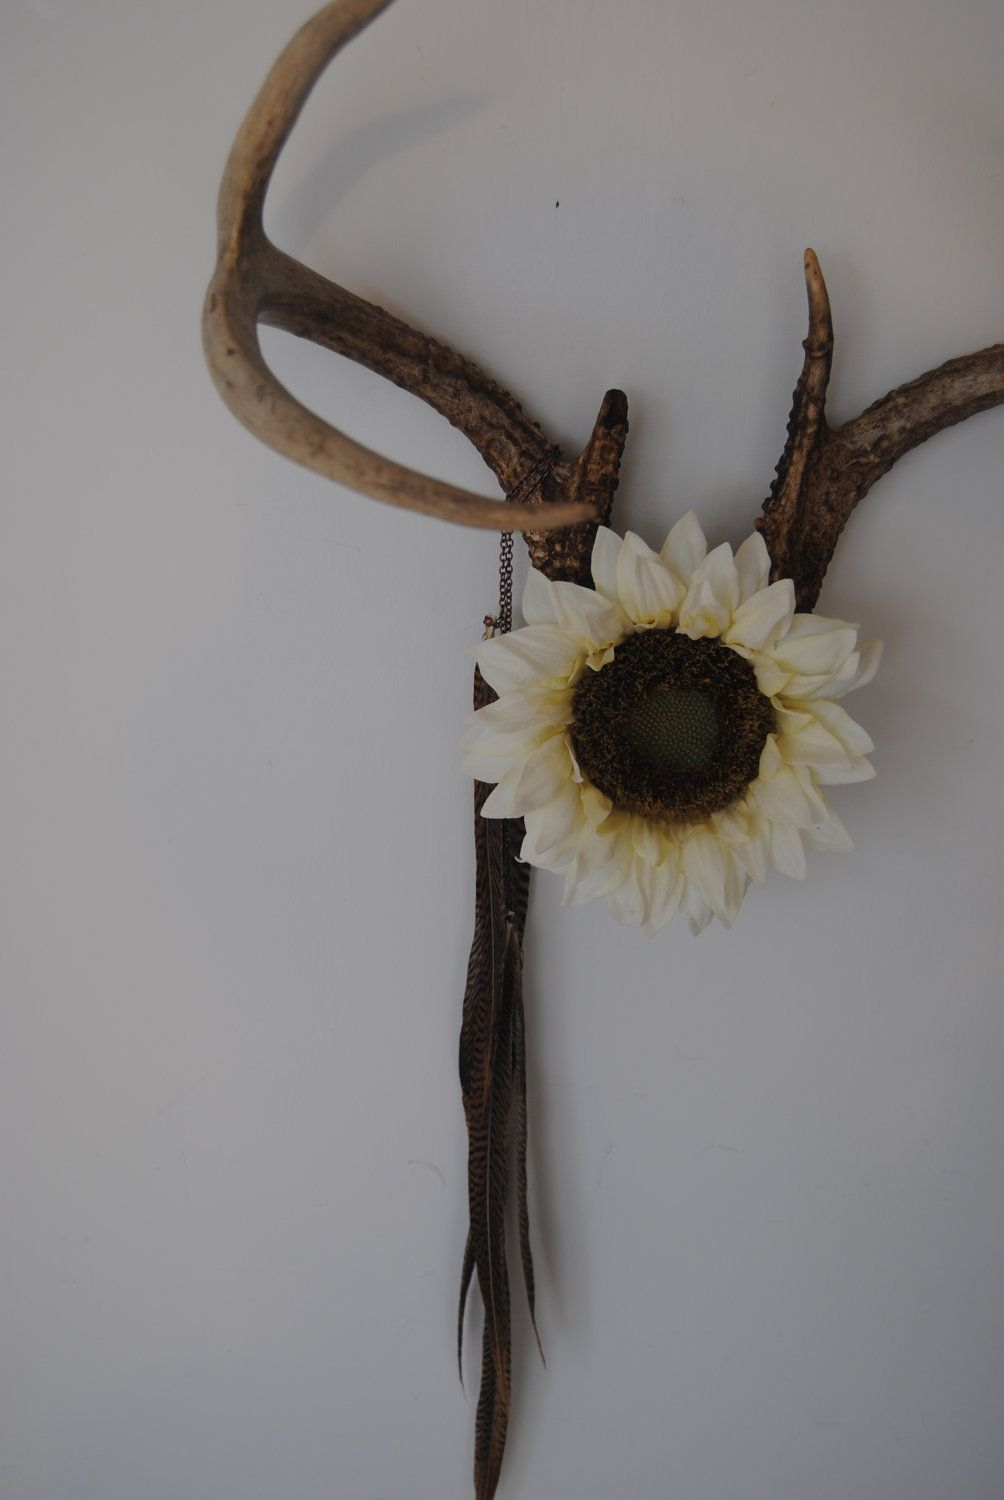 Deer Antlers Flowers U0026 Feathers   Wall Hanging Taxidermy Art 8 Point Rack Home  Decor Ivory White Dahlia Pheasant Jewelry Necklace Holder